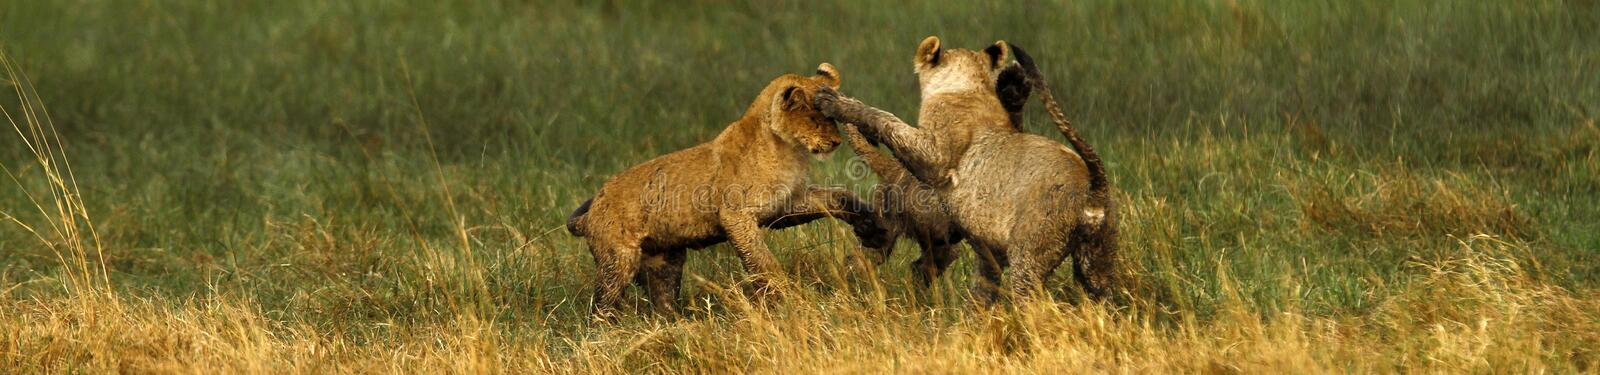 Lion Cubs playing. Playful lion cubs charging each other stock photos